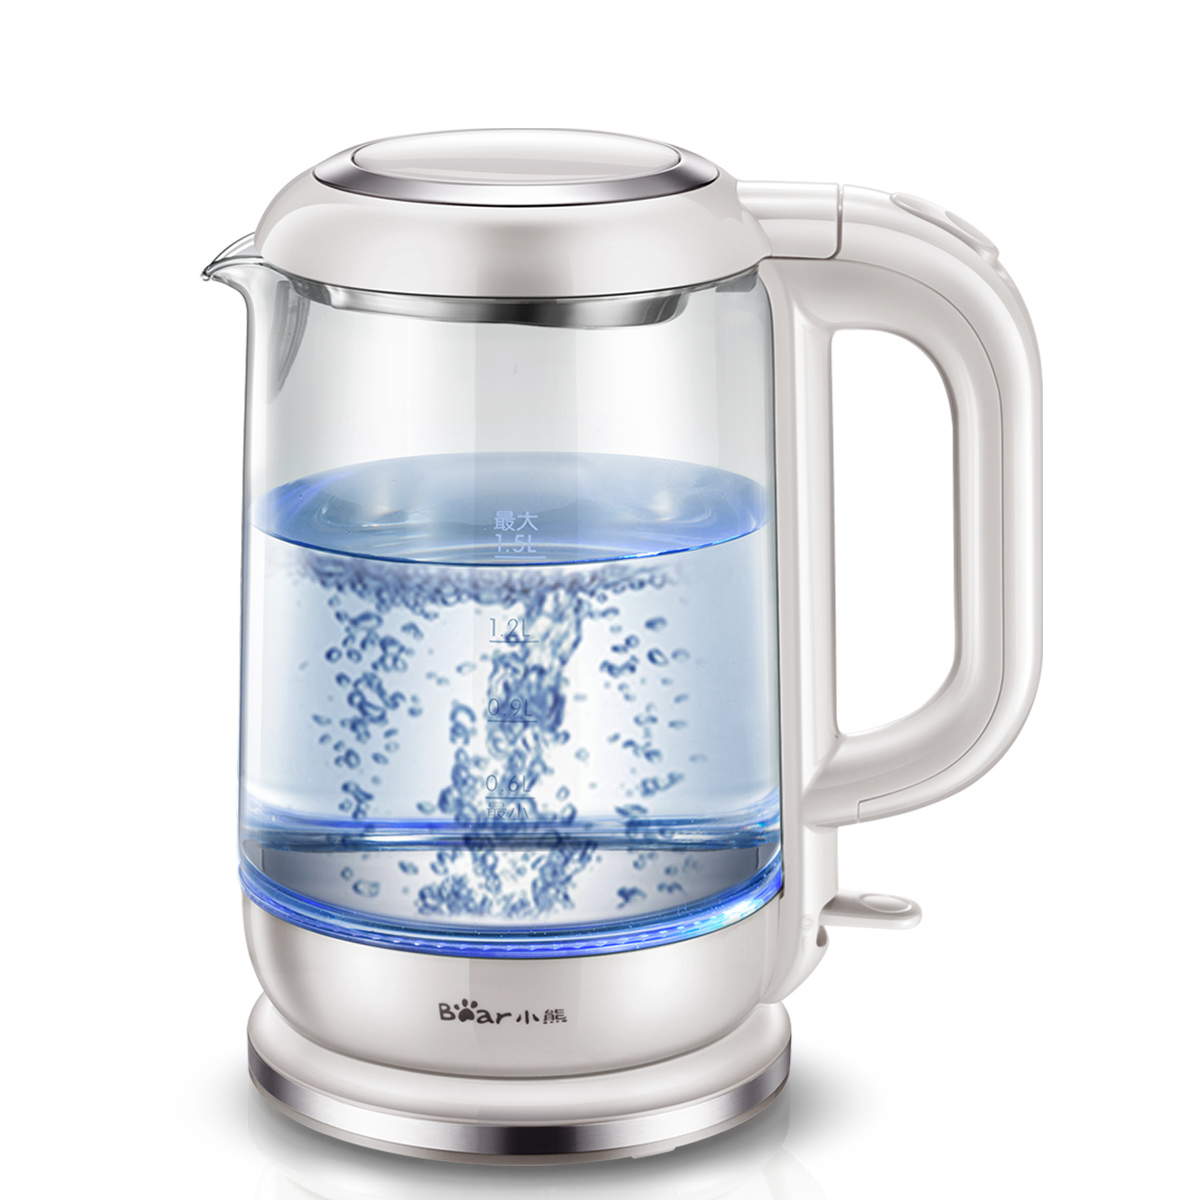 ZDH-A15D1 Household glass electric kettle Food grade 304 stainless steel Kettle 220v household 1 2l electric kettle food grade 304 stainless steel inner anti scald material fast boiling eu au uk plug